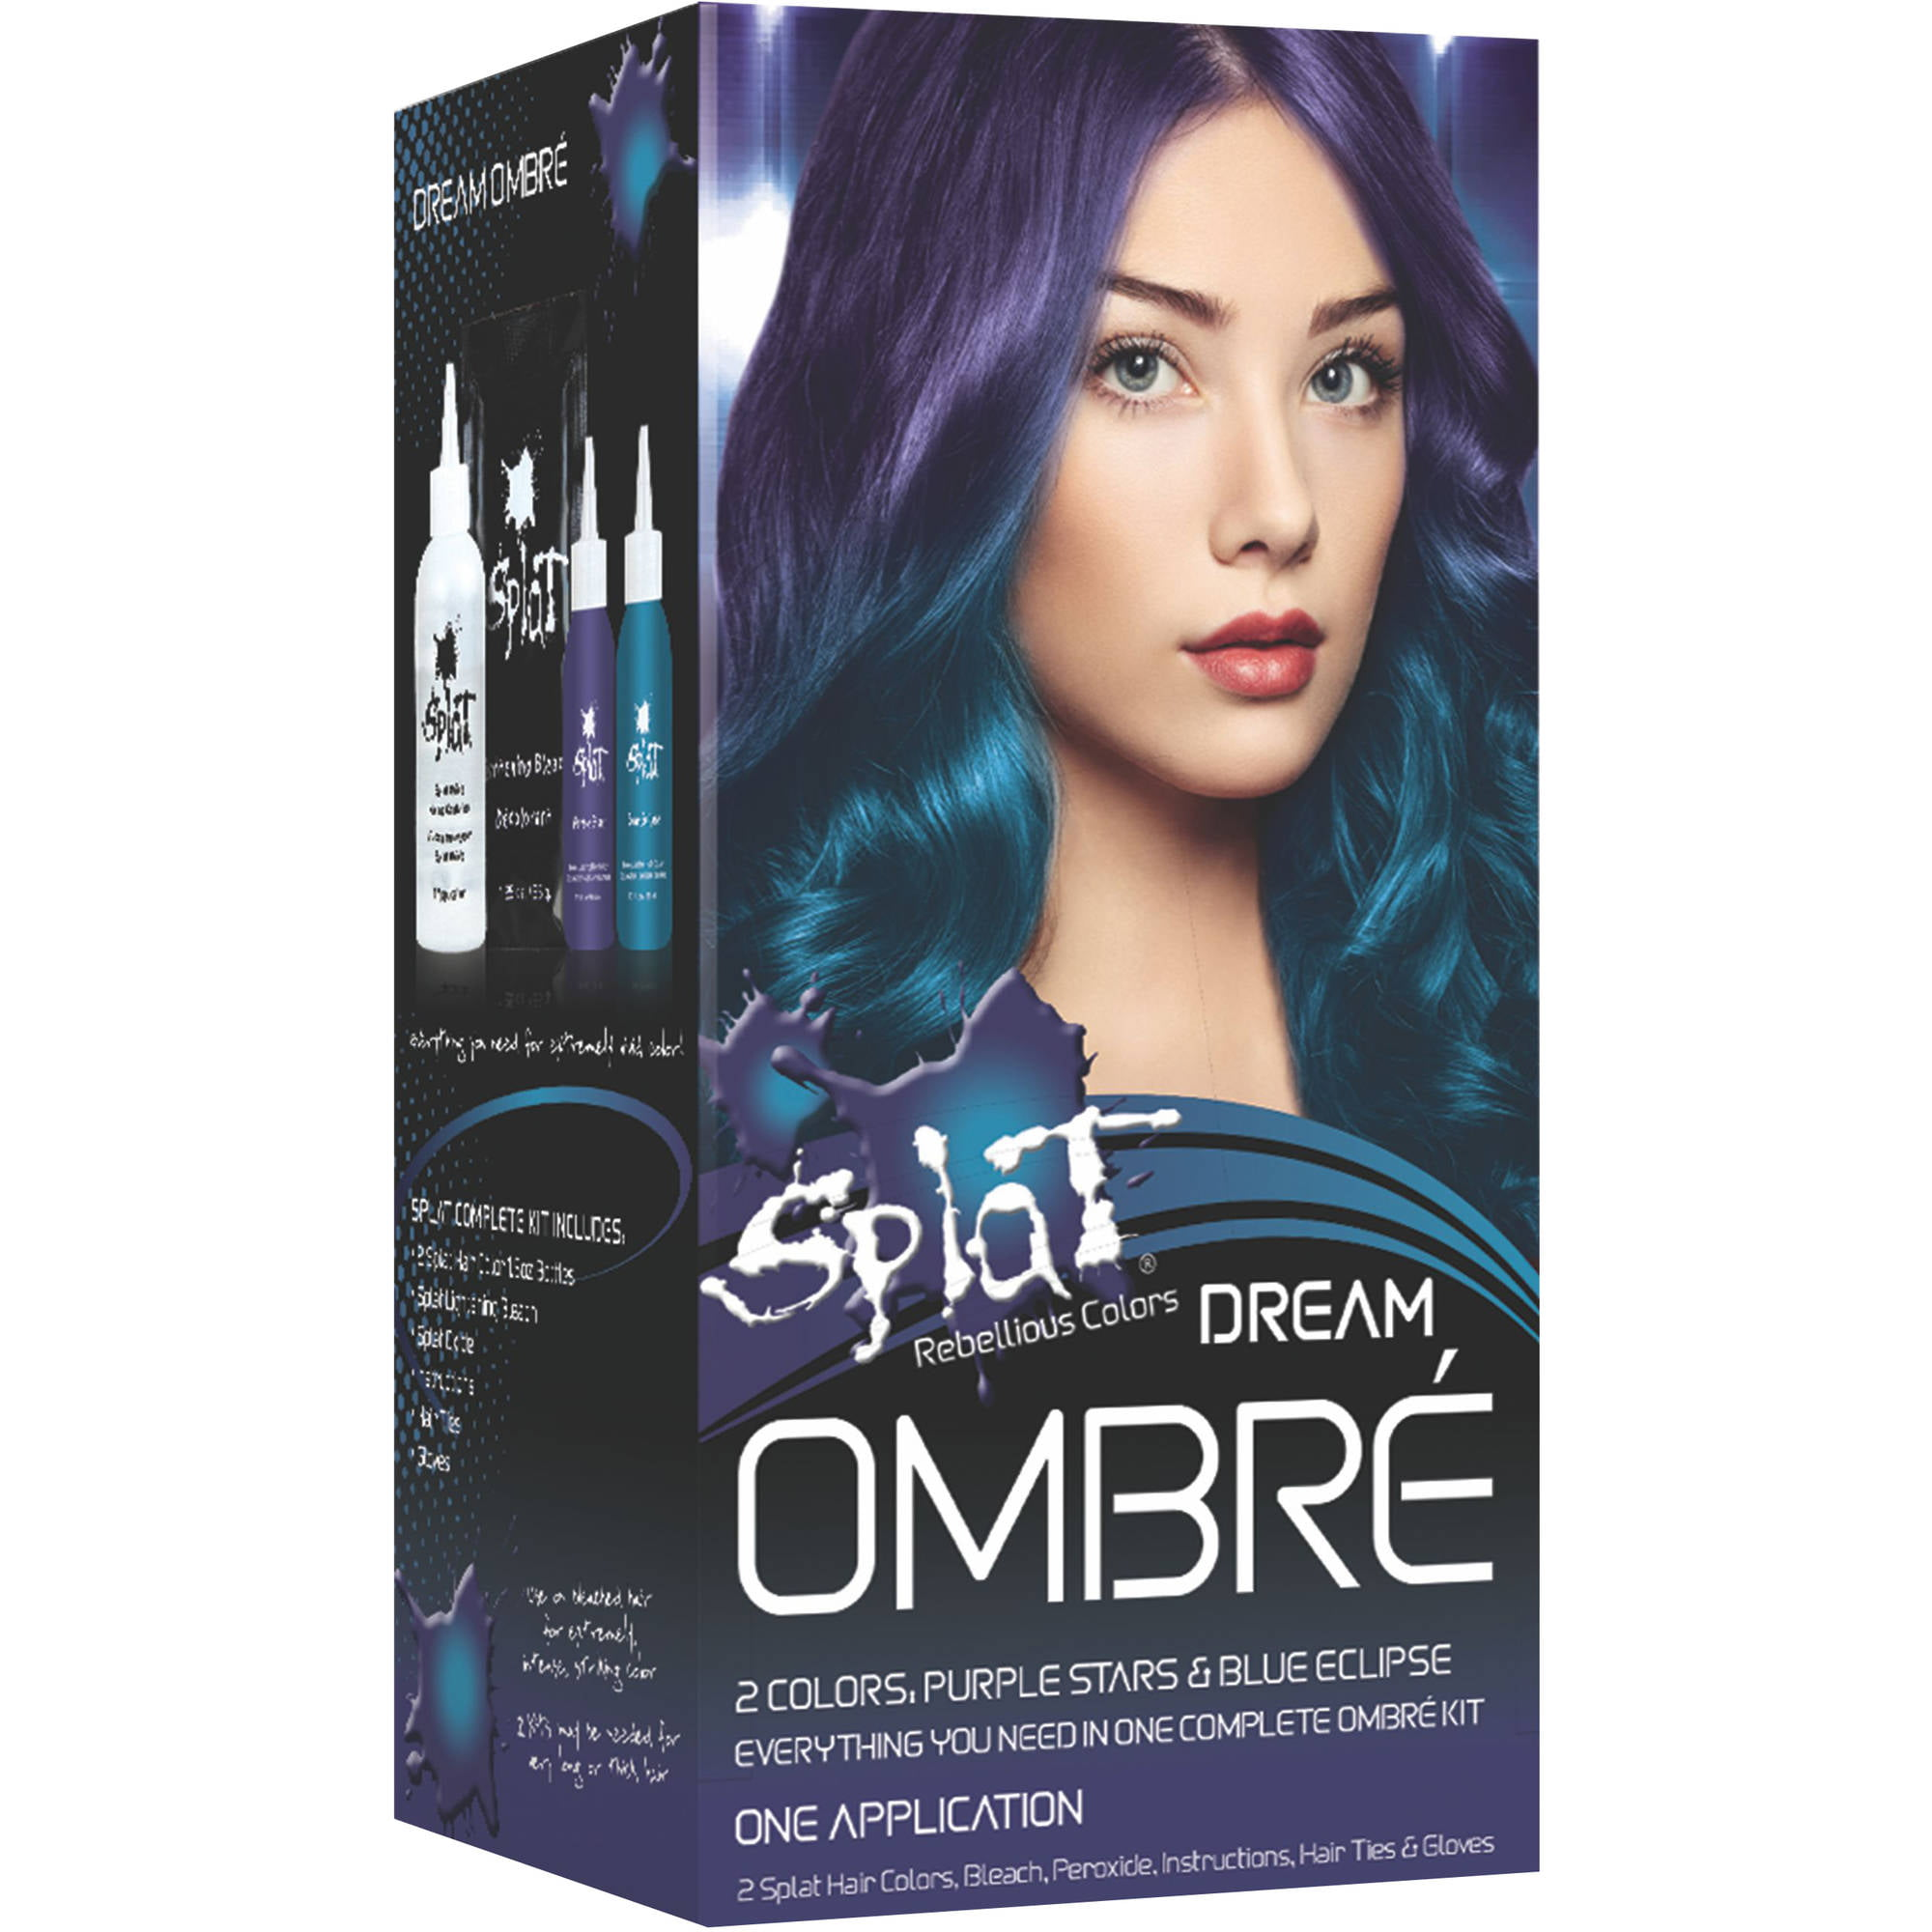 Splat rebellious colors ombre dream purple stars blue eclipse splat rebellious colors ombre dream purple stars blue eclipse walmart solutioingenieria